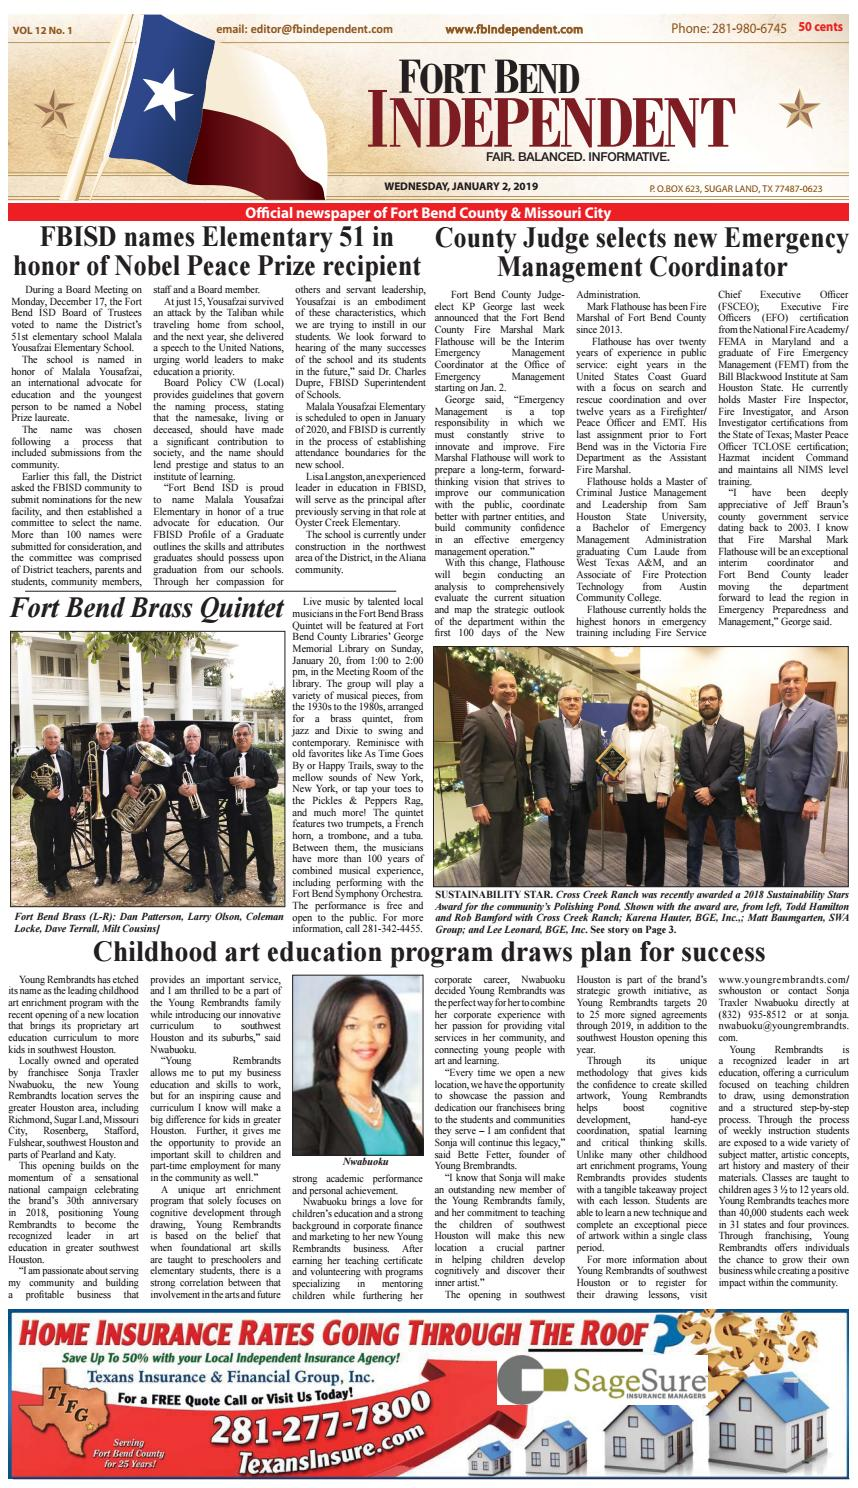 Fort Bend Independent 010219 by Fort Bend Independent - issuu